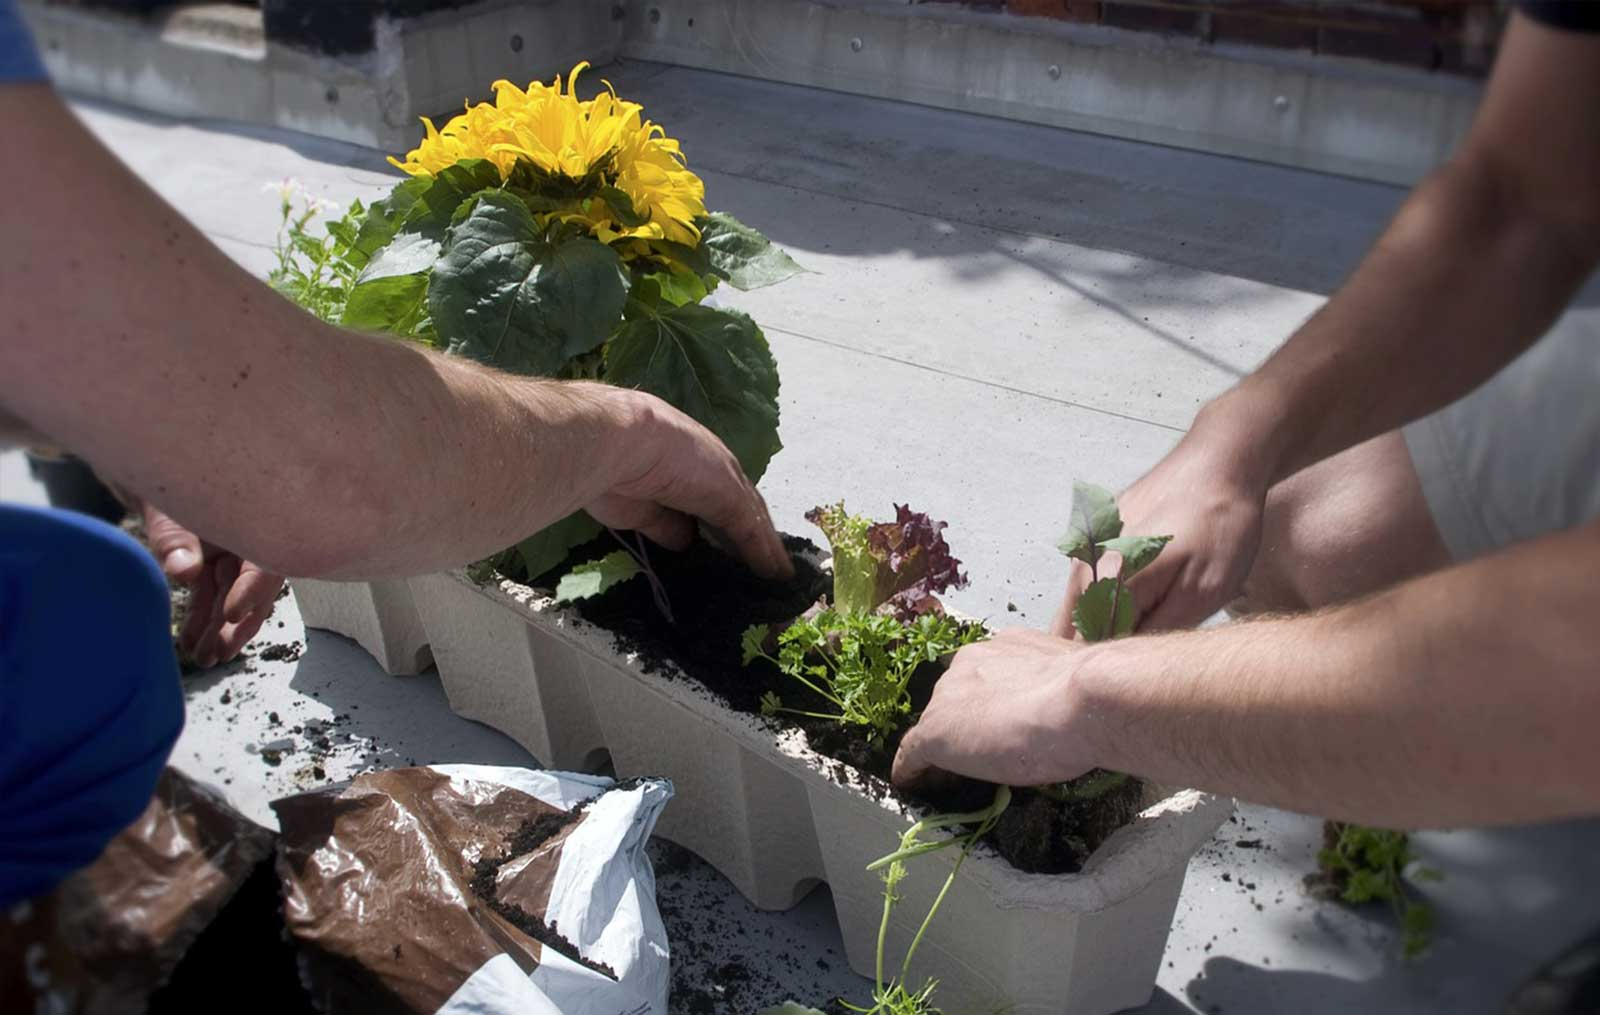 Establishing of edible gardening